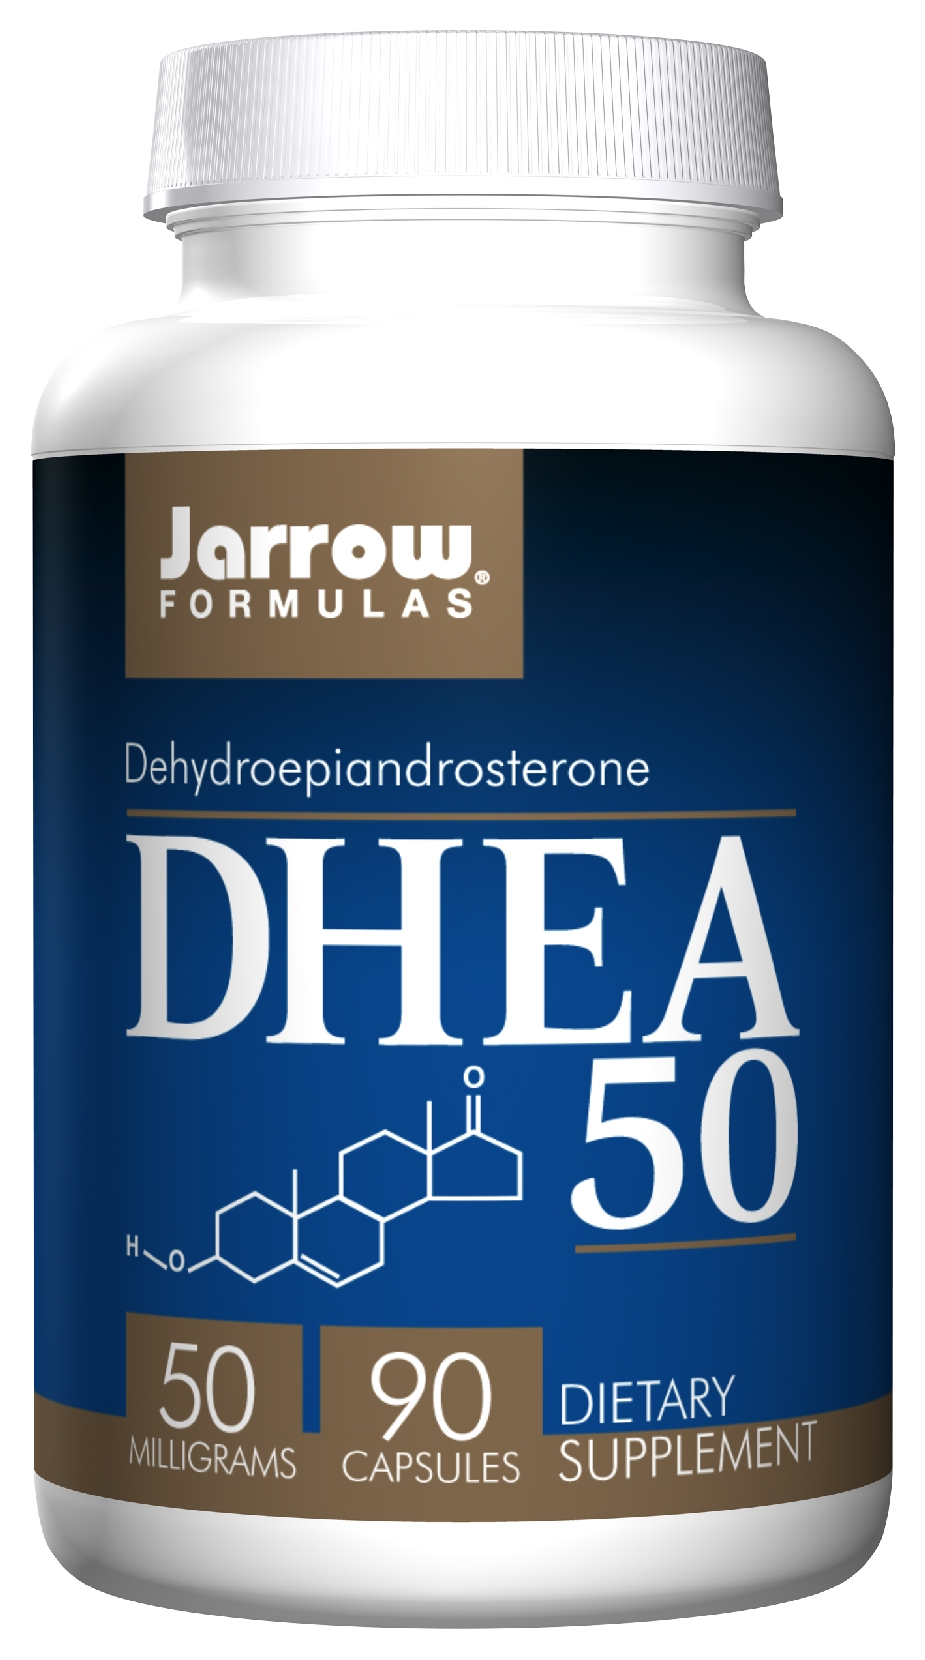 DHEA 50 50 mg 90 caps by Jarrow Formulas